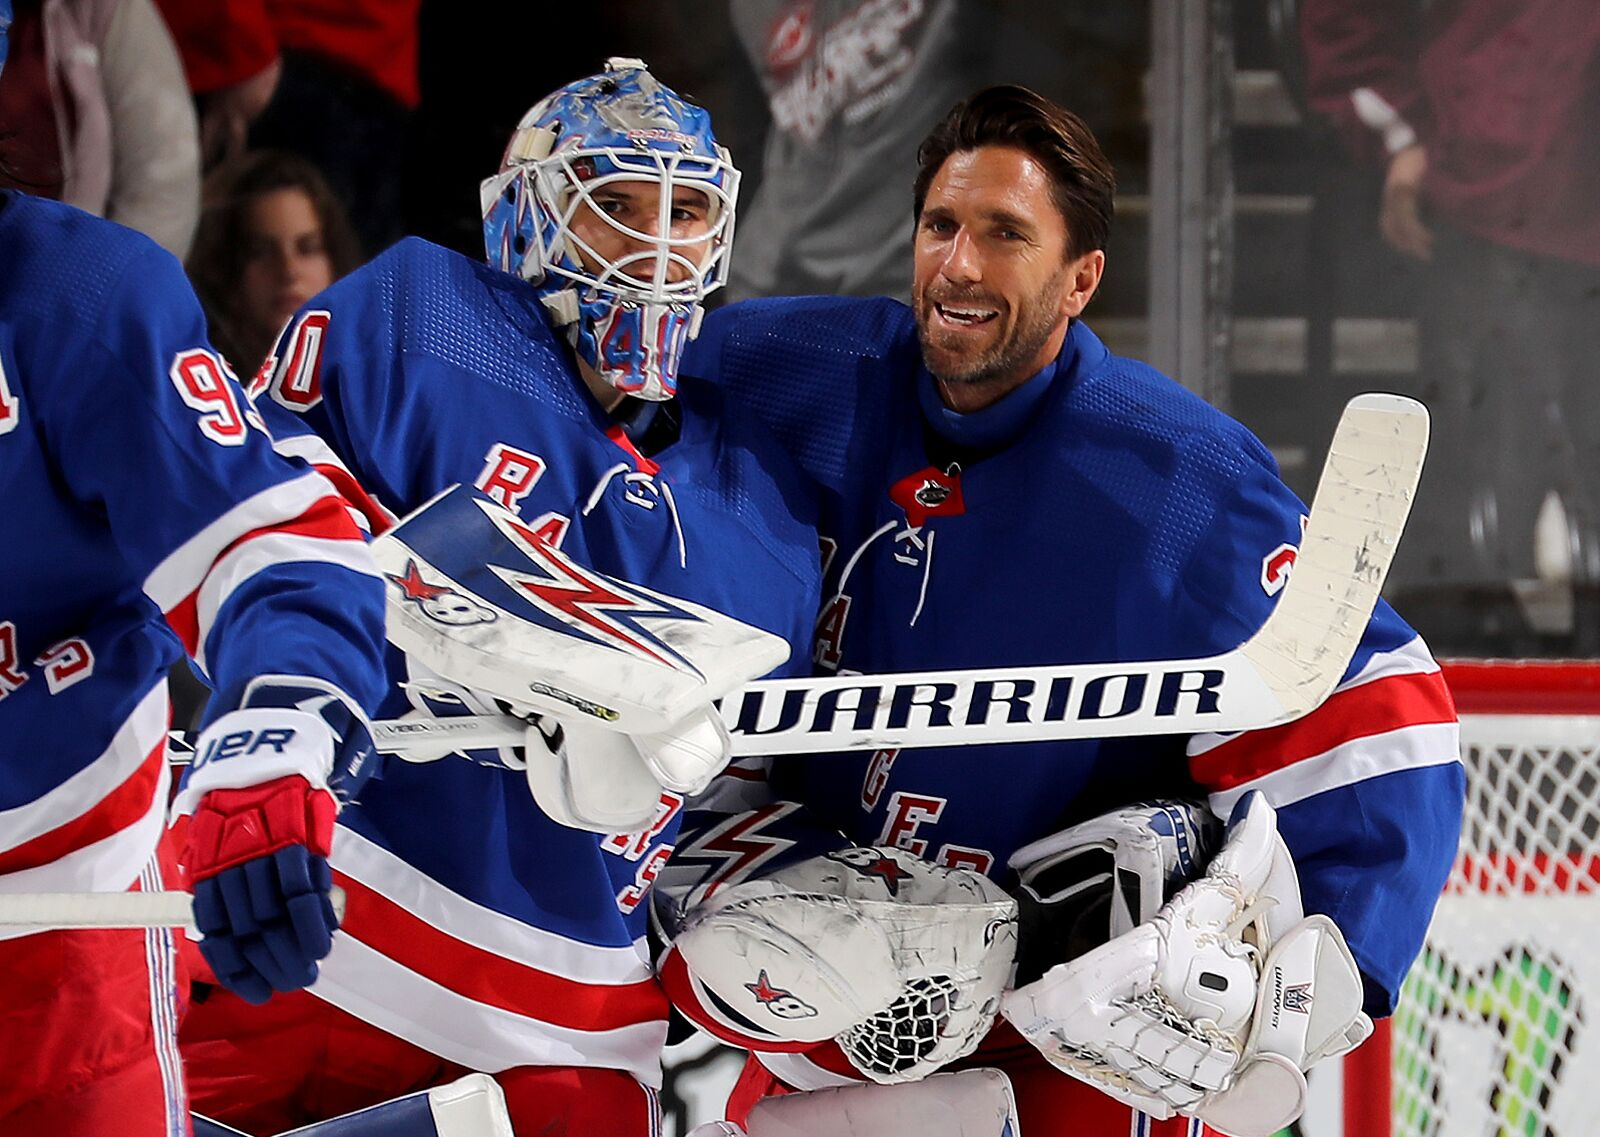 Is a 3 goalie system out of the question?